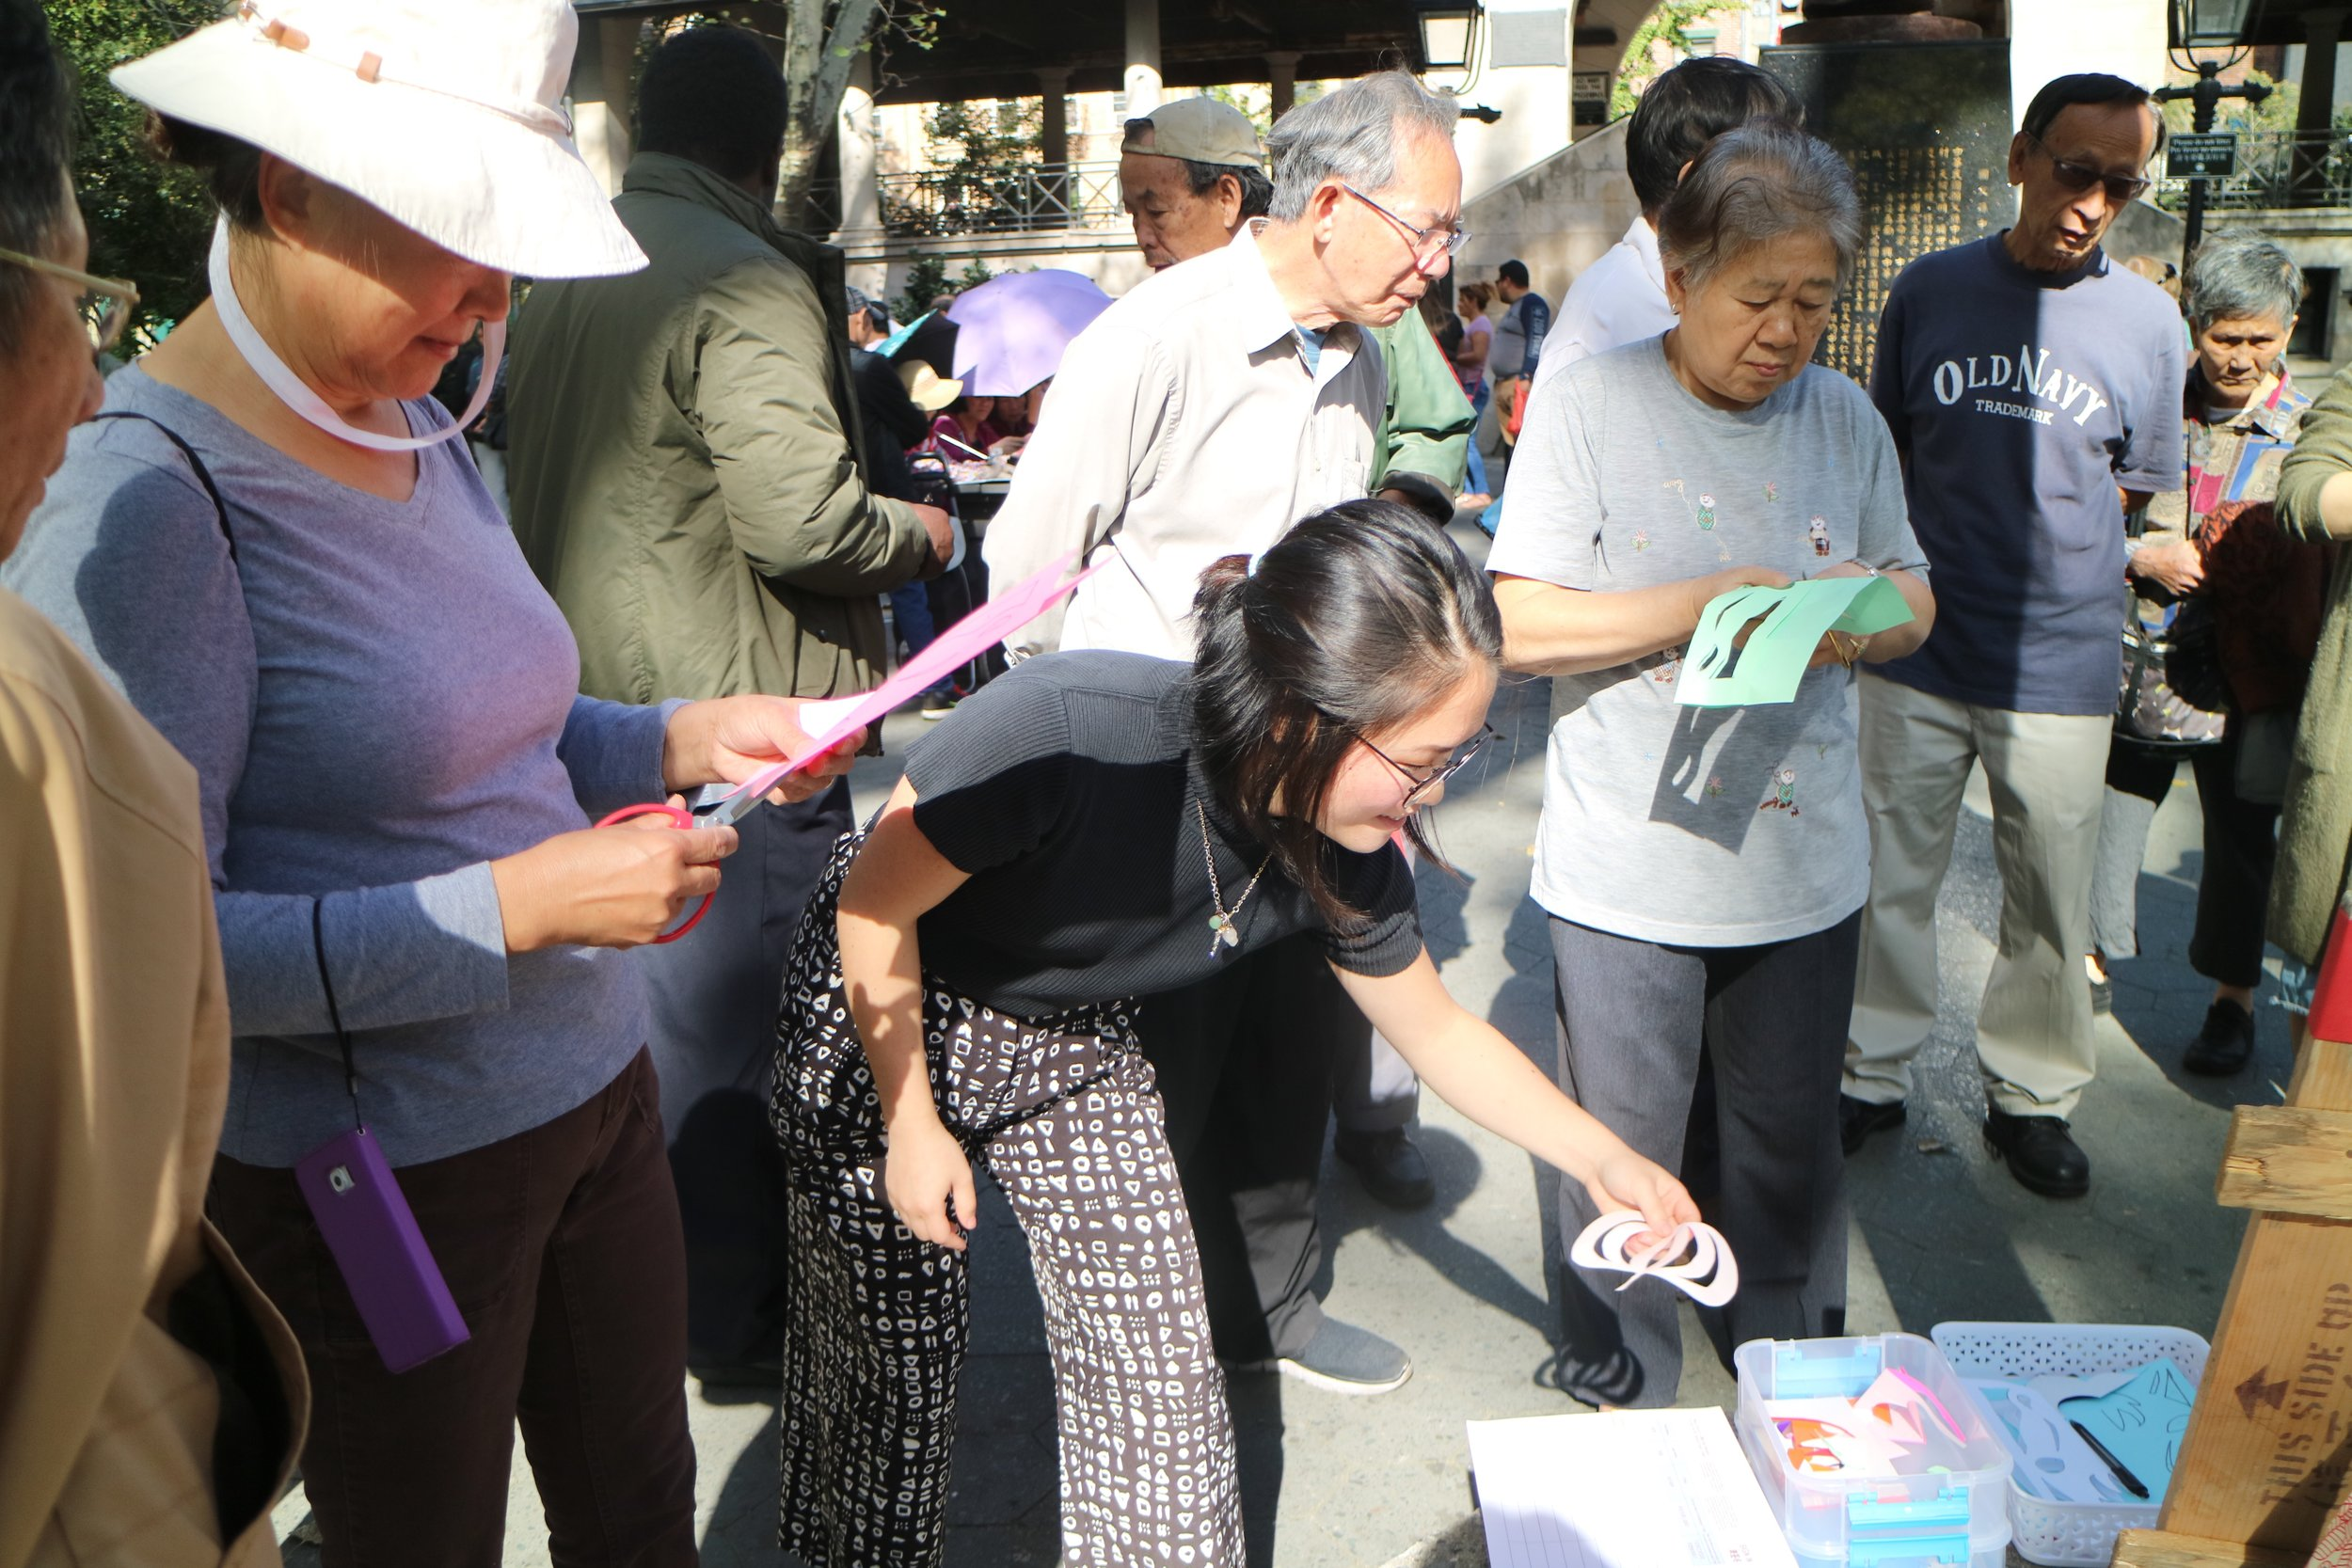 Residency Coordinator Clara Lu makes paper cuts with community members in Columbus Park for a W.O.W. Shadow Puppet Theater free workshop. Image credit: Mei Lum // 在W.O.W.的免费『皮影戏院』项目上,驻地项目协调员Clara Lu在哥伦布公园和社区成员们一起做剪纸. Mei Lum摄